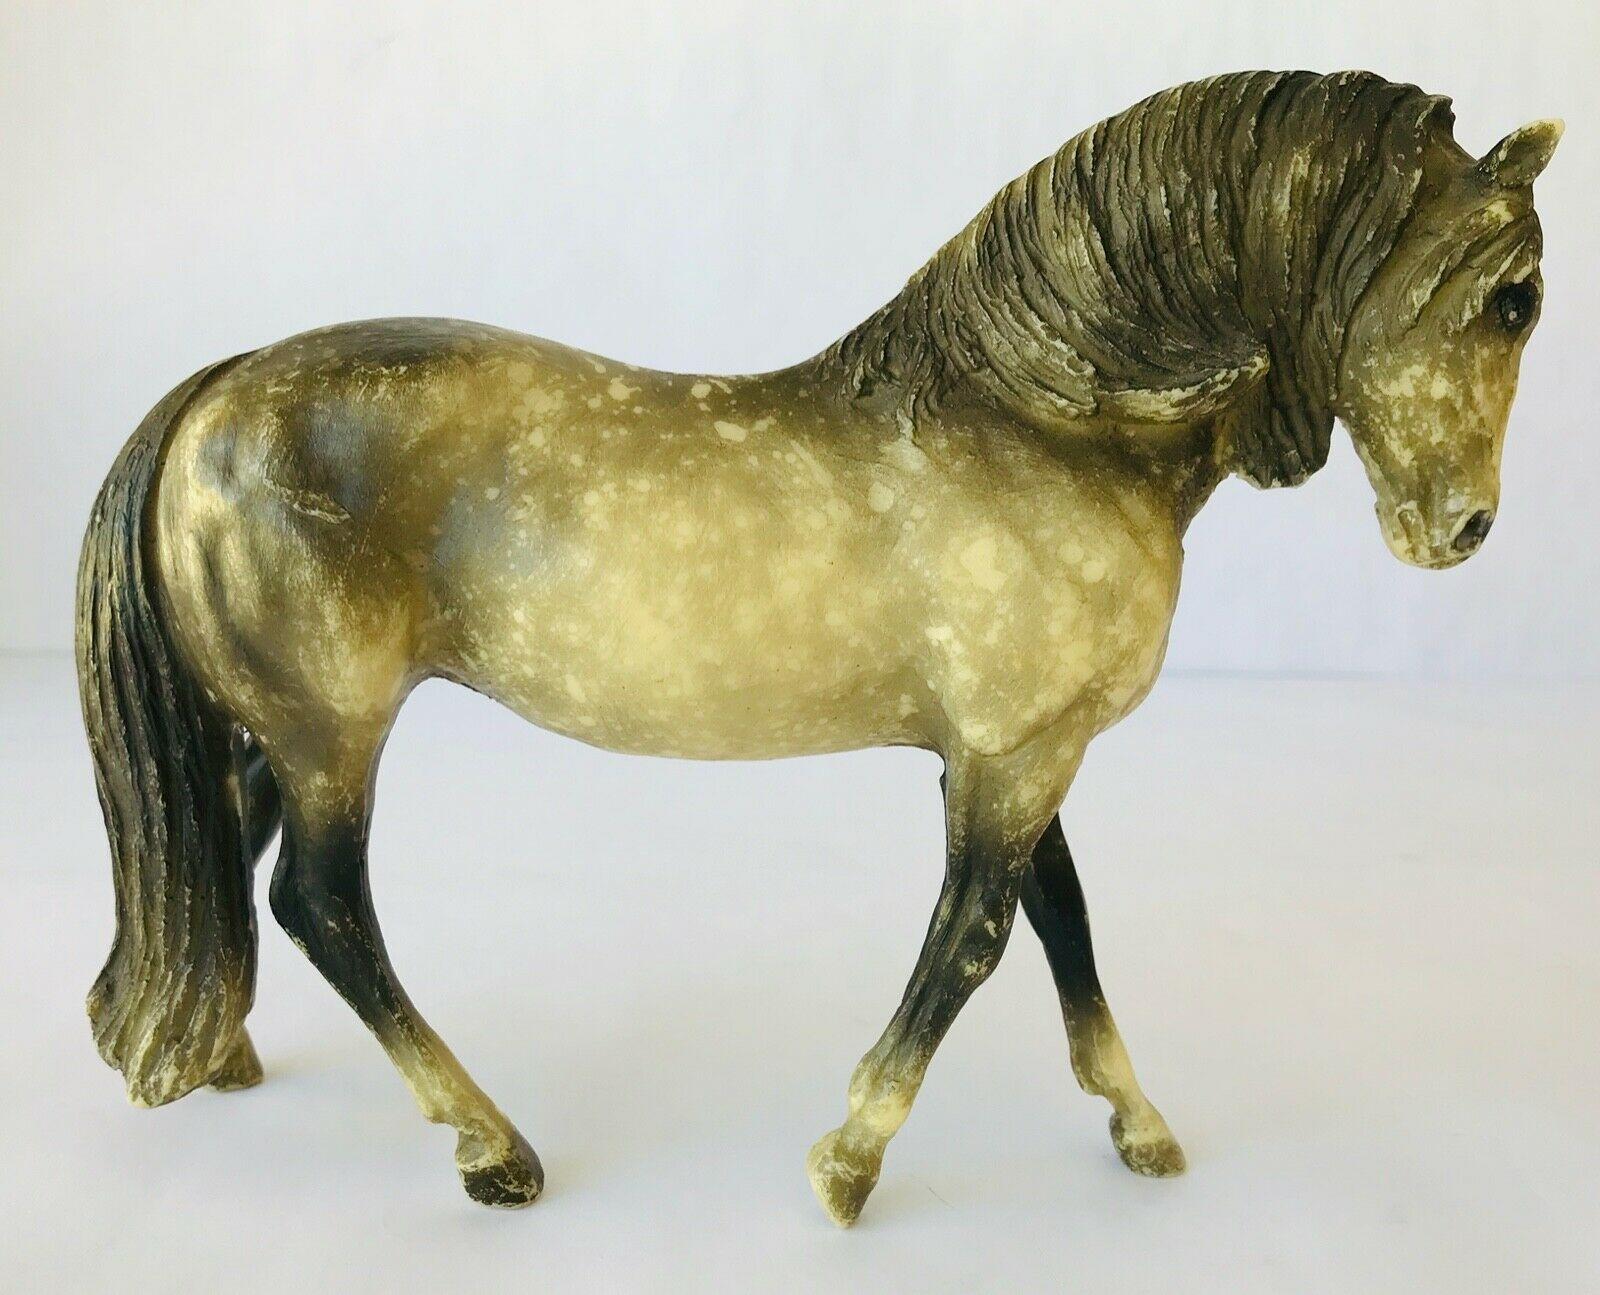 Primary image for Breyer Classic Model Horse 8925 Andalusian Mare Dapple Grey 1996